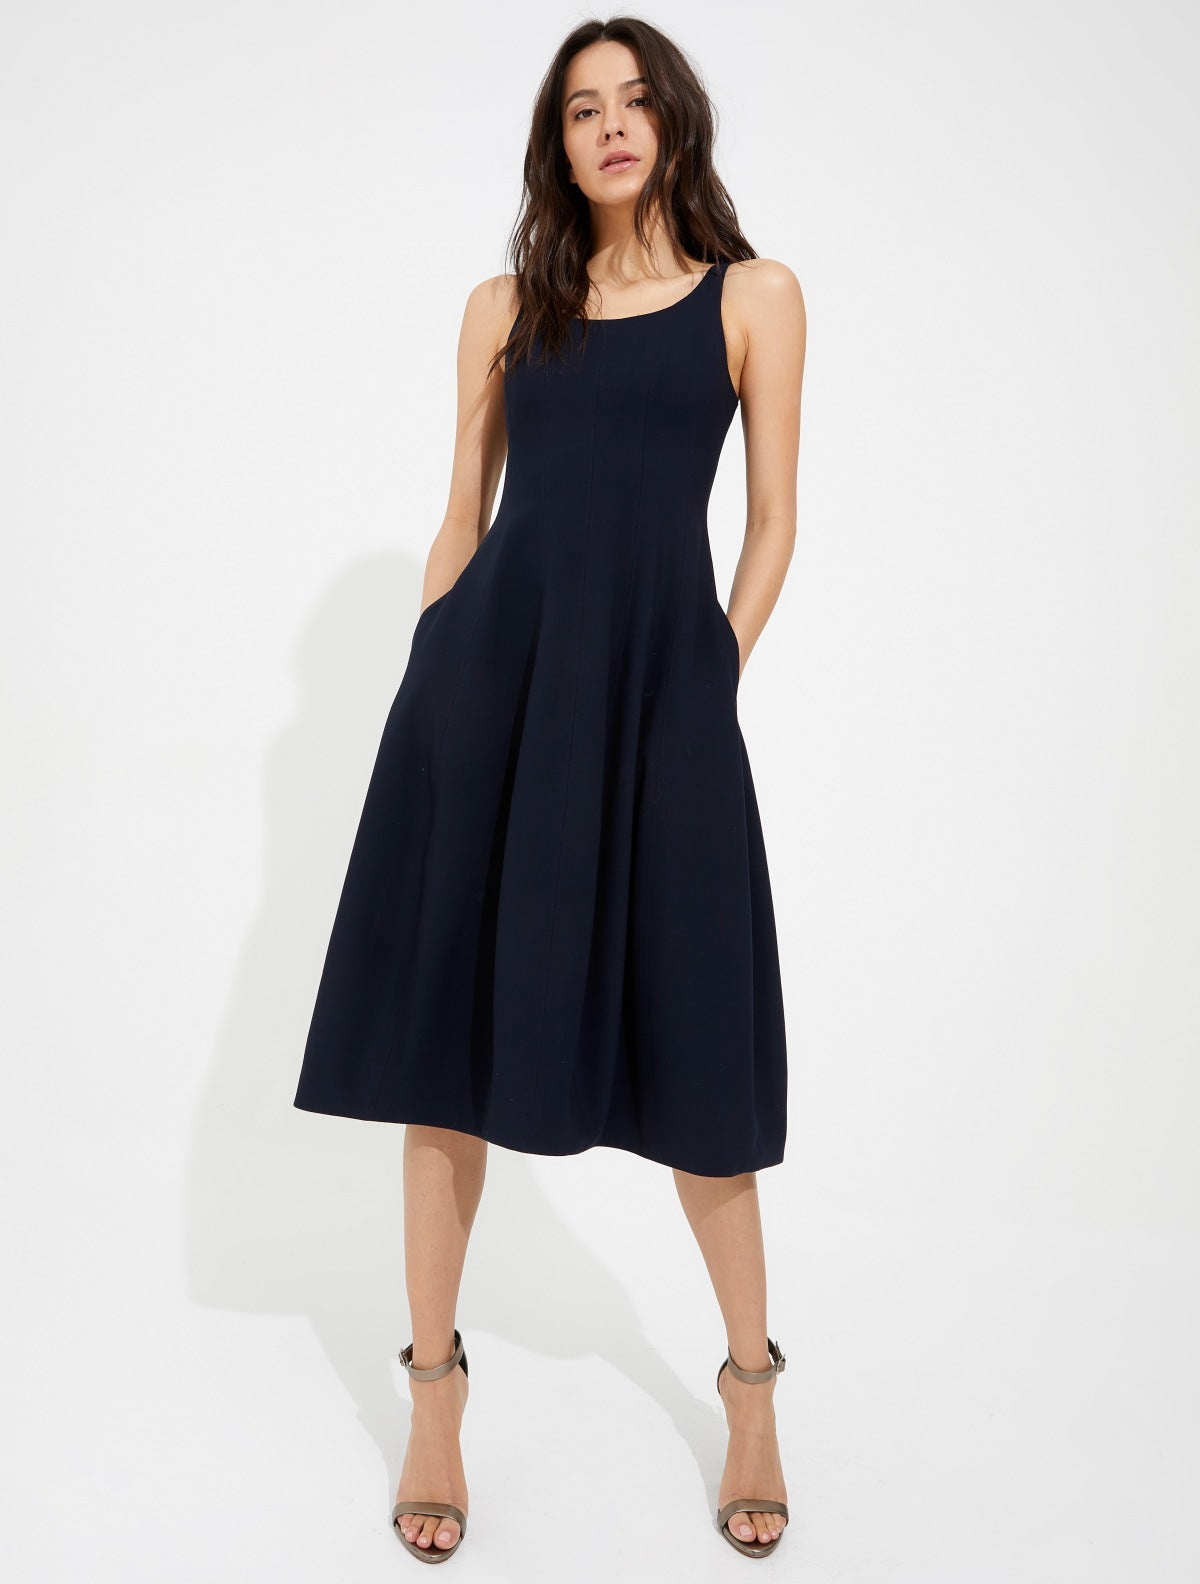 Architectural power crepe dress - Halston